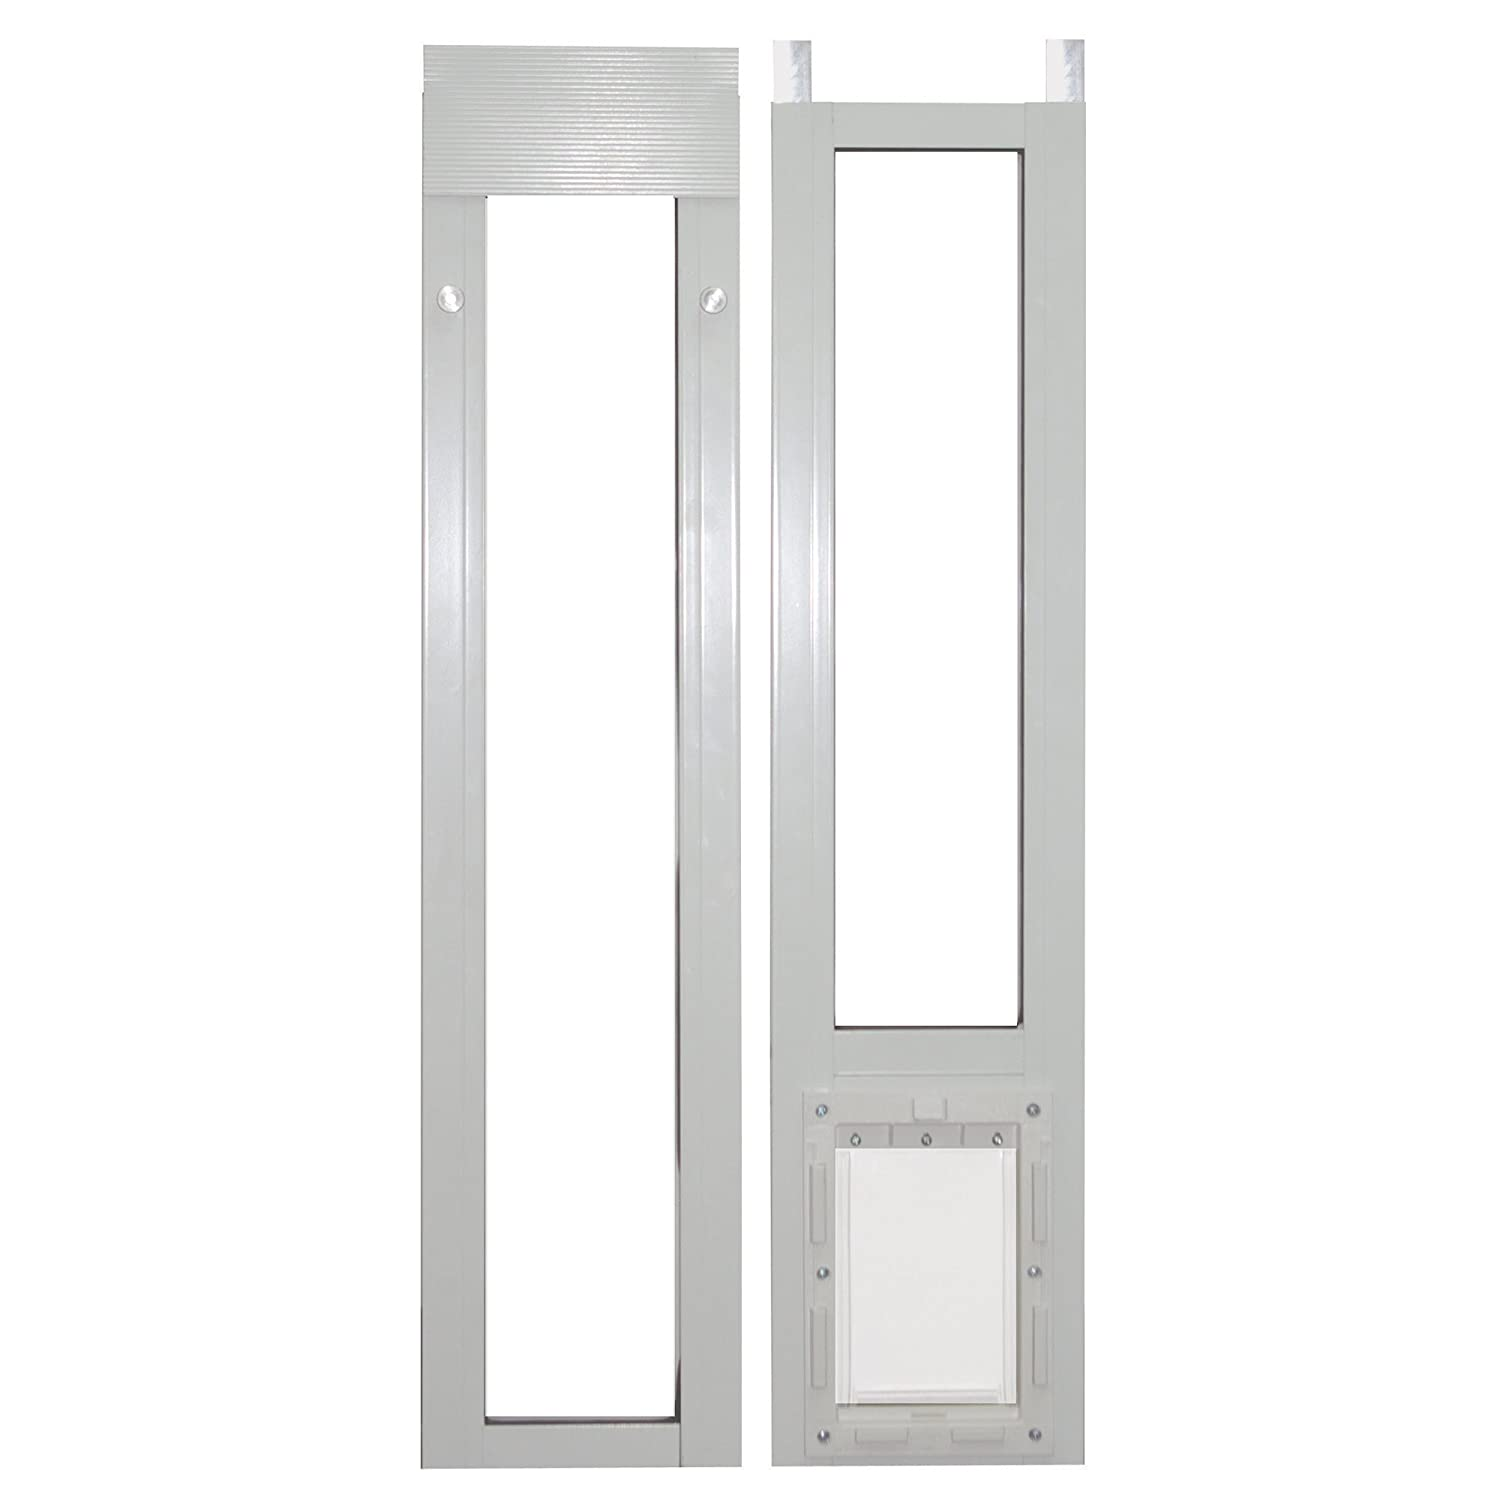 Ideal Pet Modular Vinyl Patio Pet Door EBay .